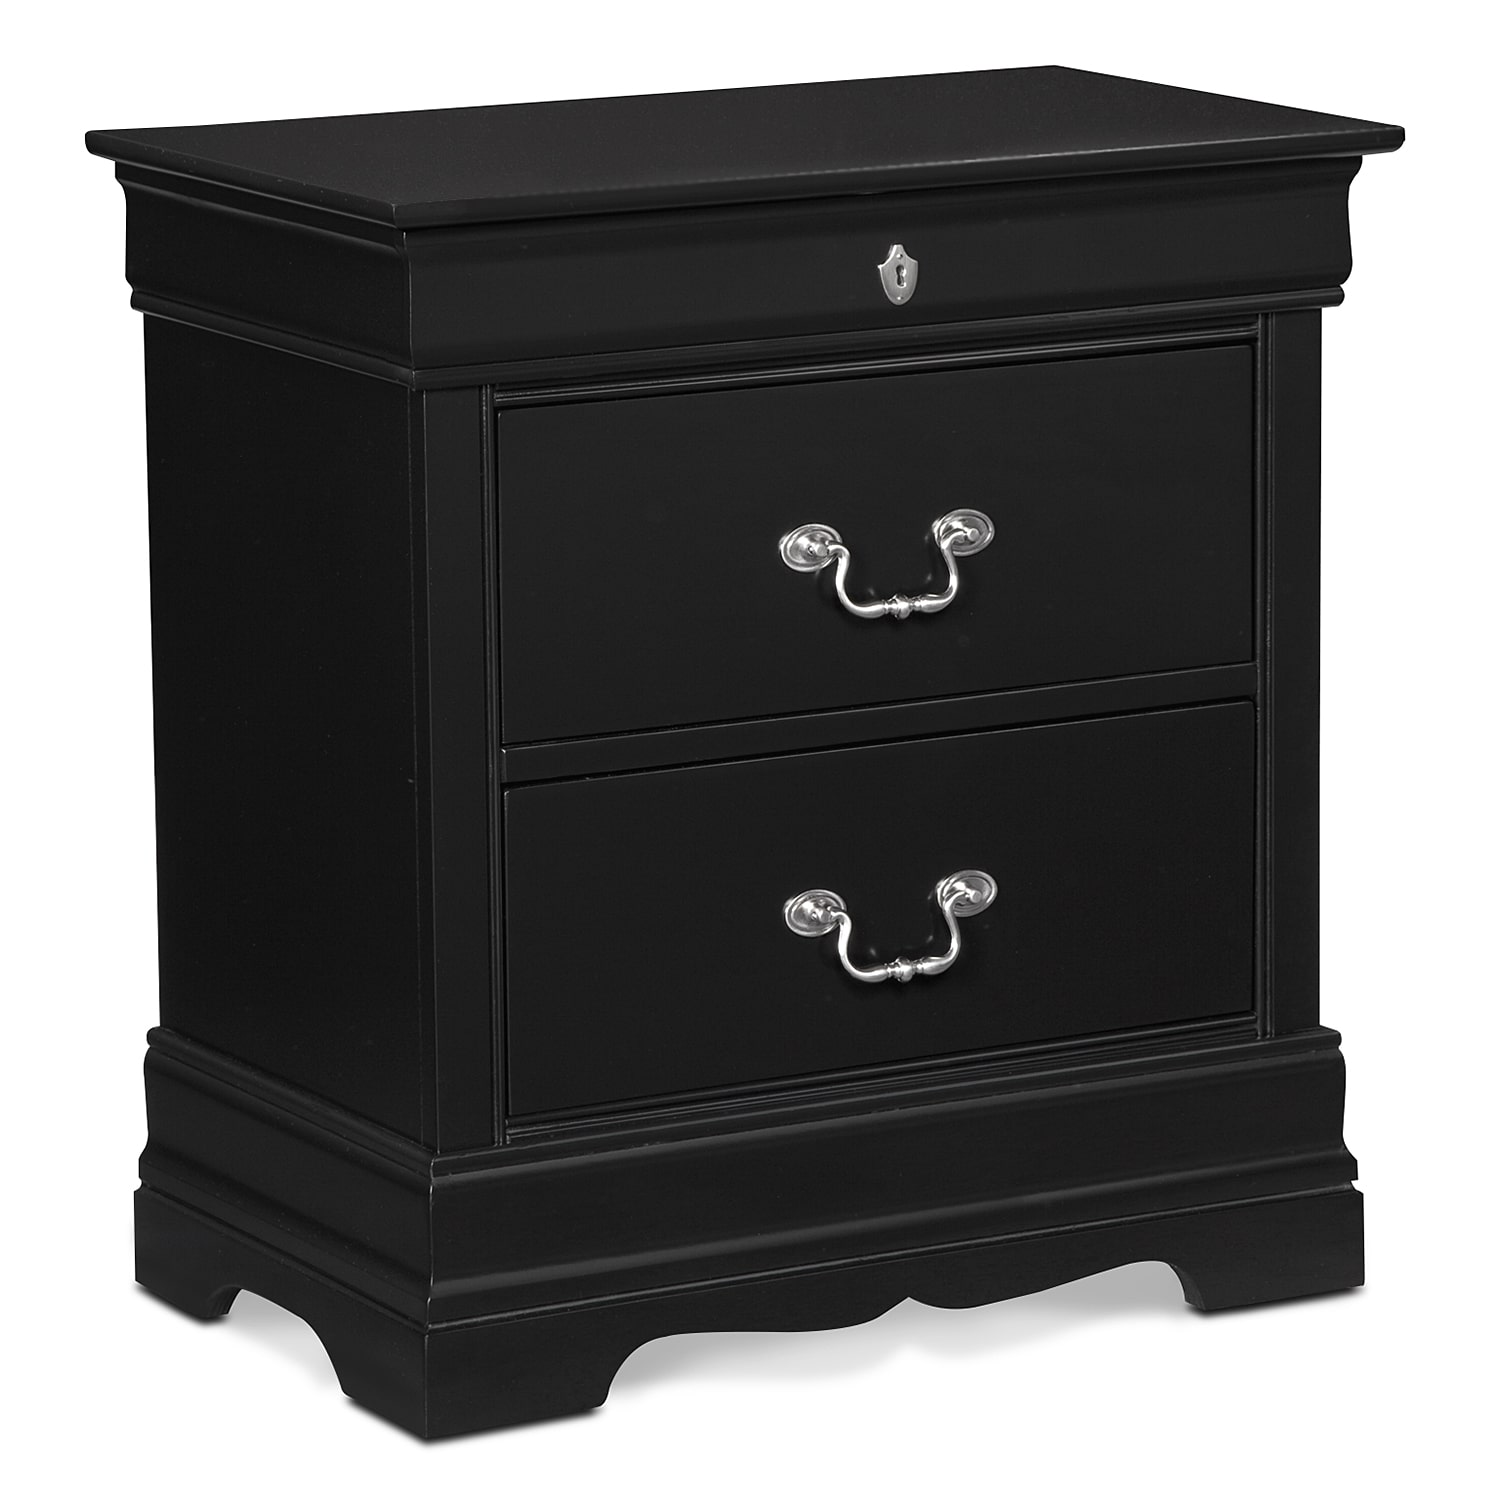 Neo classic nightstand black value city furniture for Classic furniture products vadodara